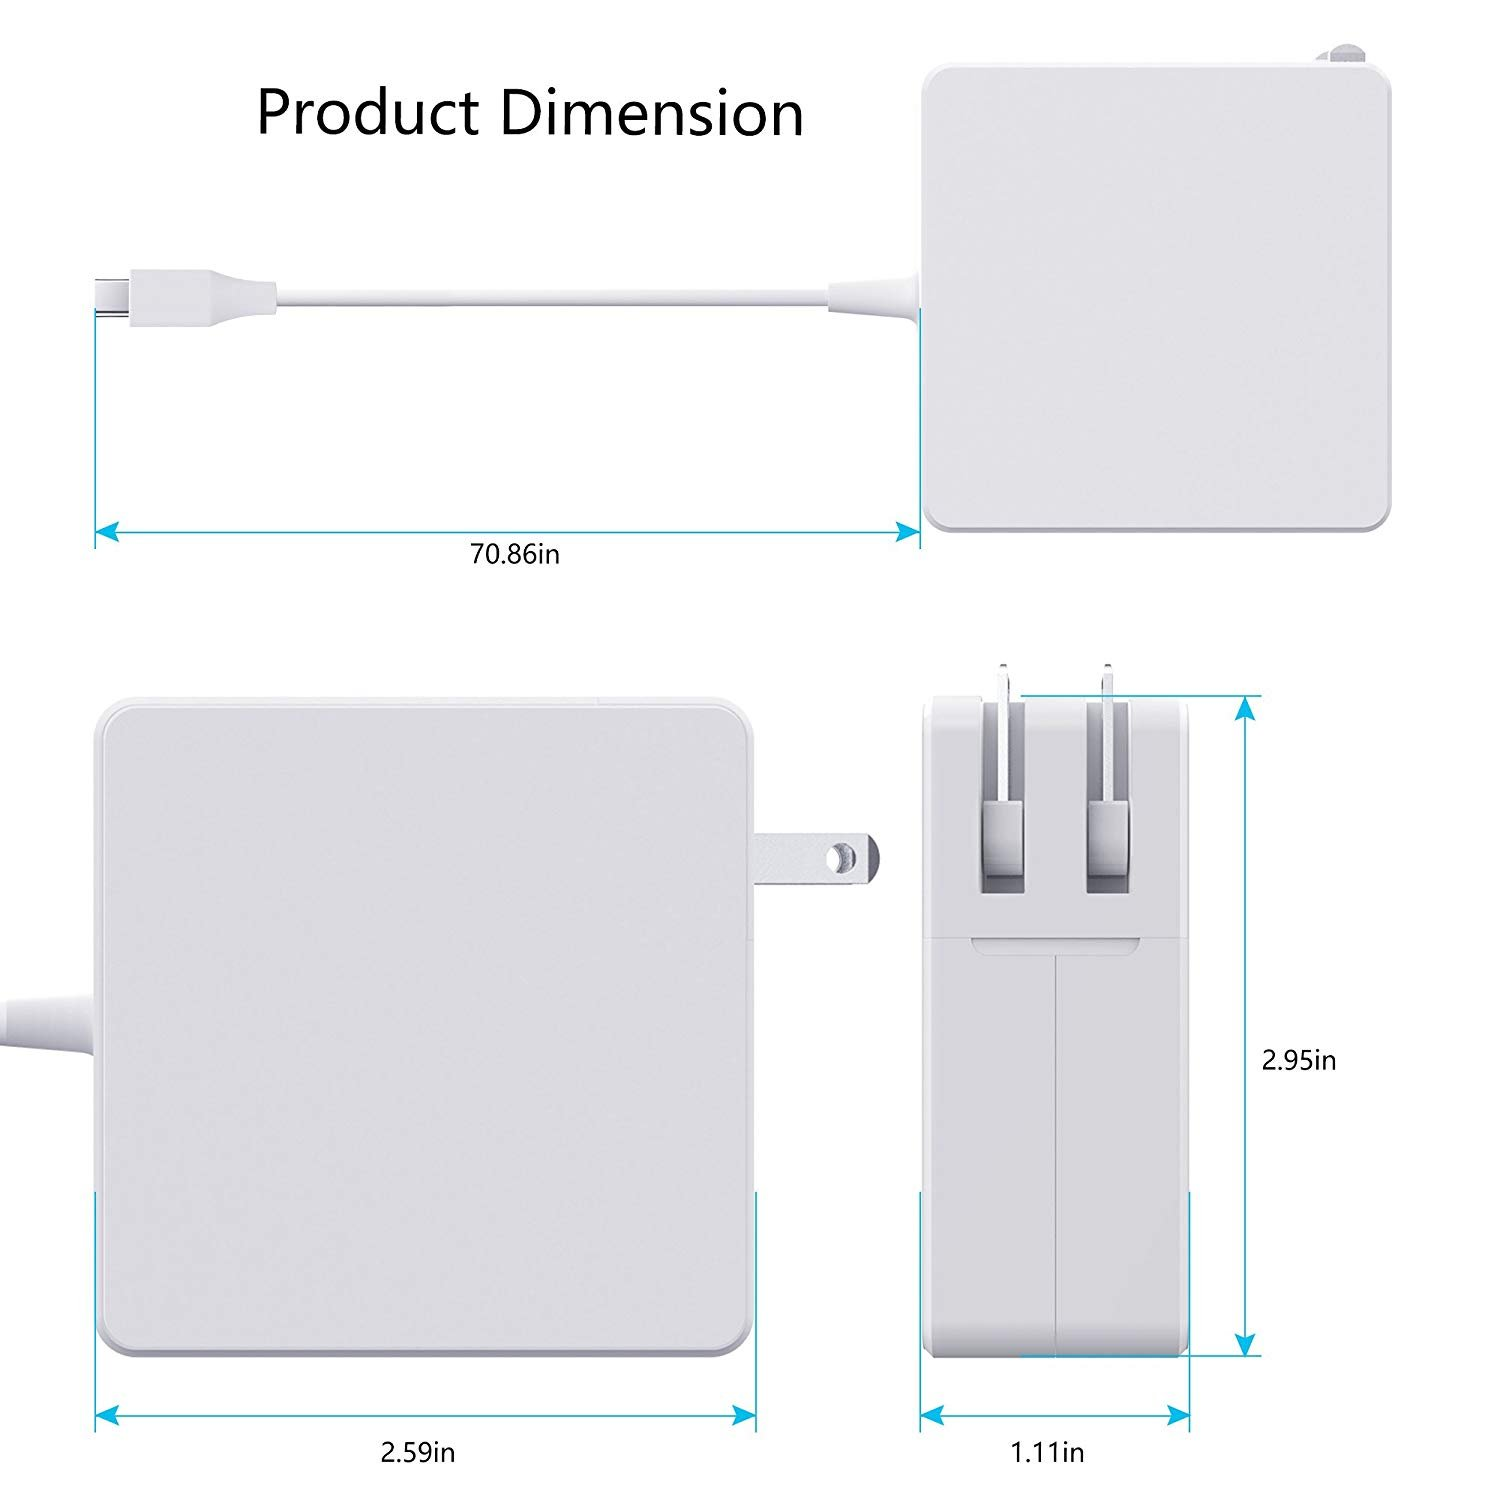 61W USB C Power Adapter With USB-C to USB-C Charge Cable for Apple Macbook Pro 13'',12'',iPad Pro,HTC 10,Nexus 5X/6P, LG G5,Pixel C,HP Spectre,Moto Z,Google Pixel 2/2 XL, Nintendo Switch and More by Elflight (Image #3)